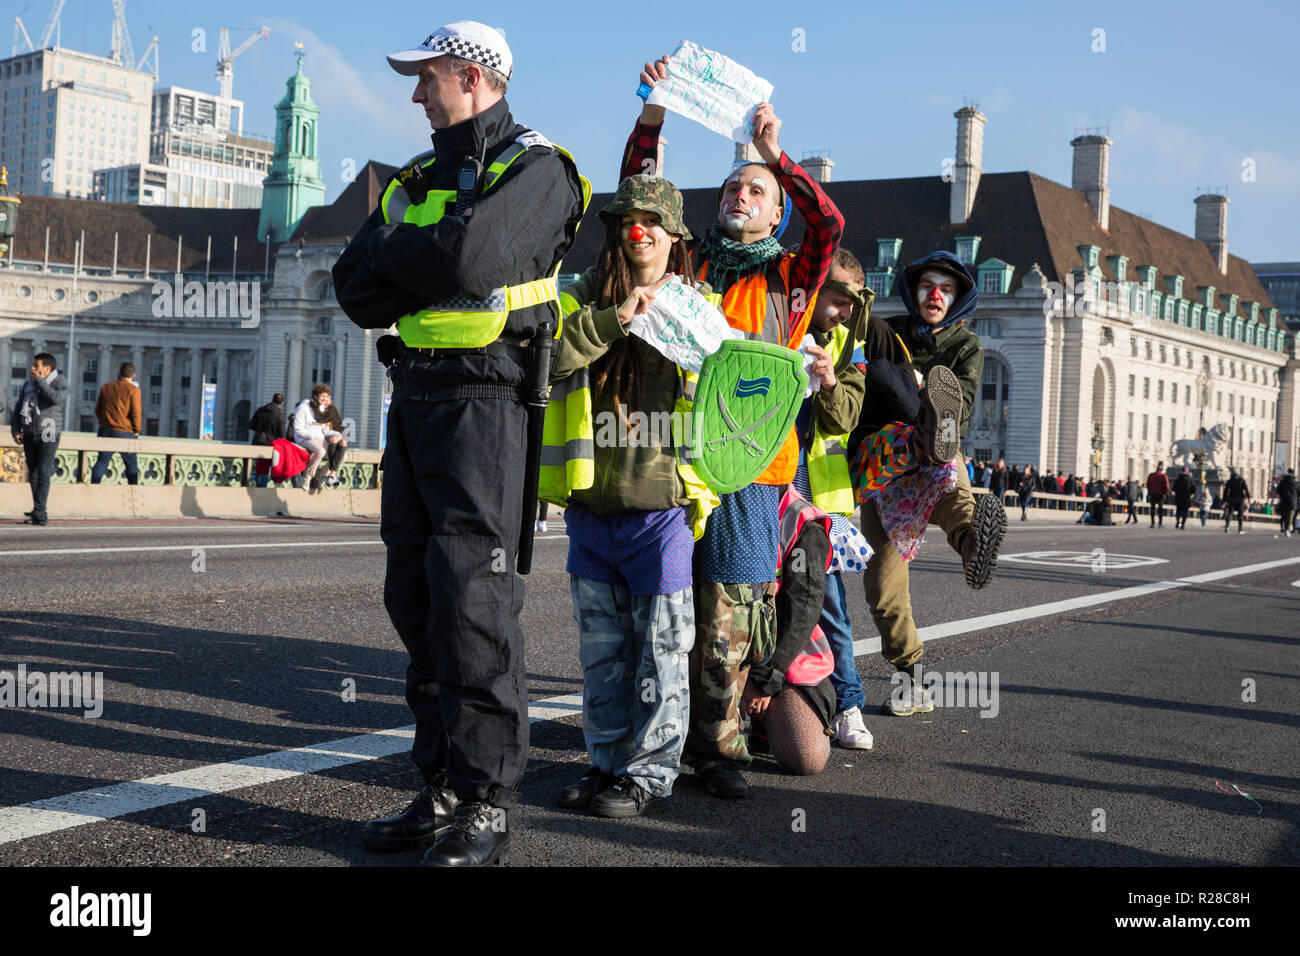 London, UK. 17th November, 2018. Clowns from Clandestine Insurgent Rebel Clown Army (CIRCA) support Extinction Rebellion blocking Westminster Bridge, one of five bridges blocked in central London, as part of a Rebellion Day event to highlight 'criminal inaction in the face of climate change catastrophe and ecological collapse' by the UK Government as part of a programme of civil disobedience during which scores of campaigners have been arrested. Credit: Mark Kerrison/Alamy Live News Stock Photo